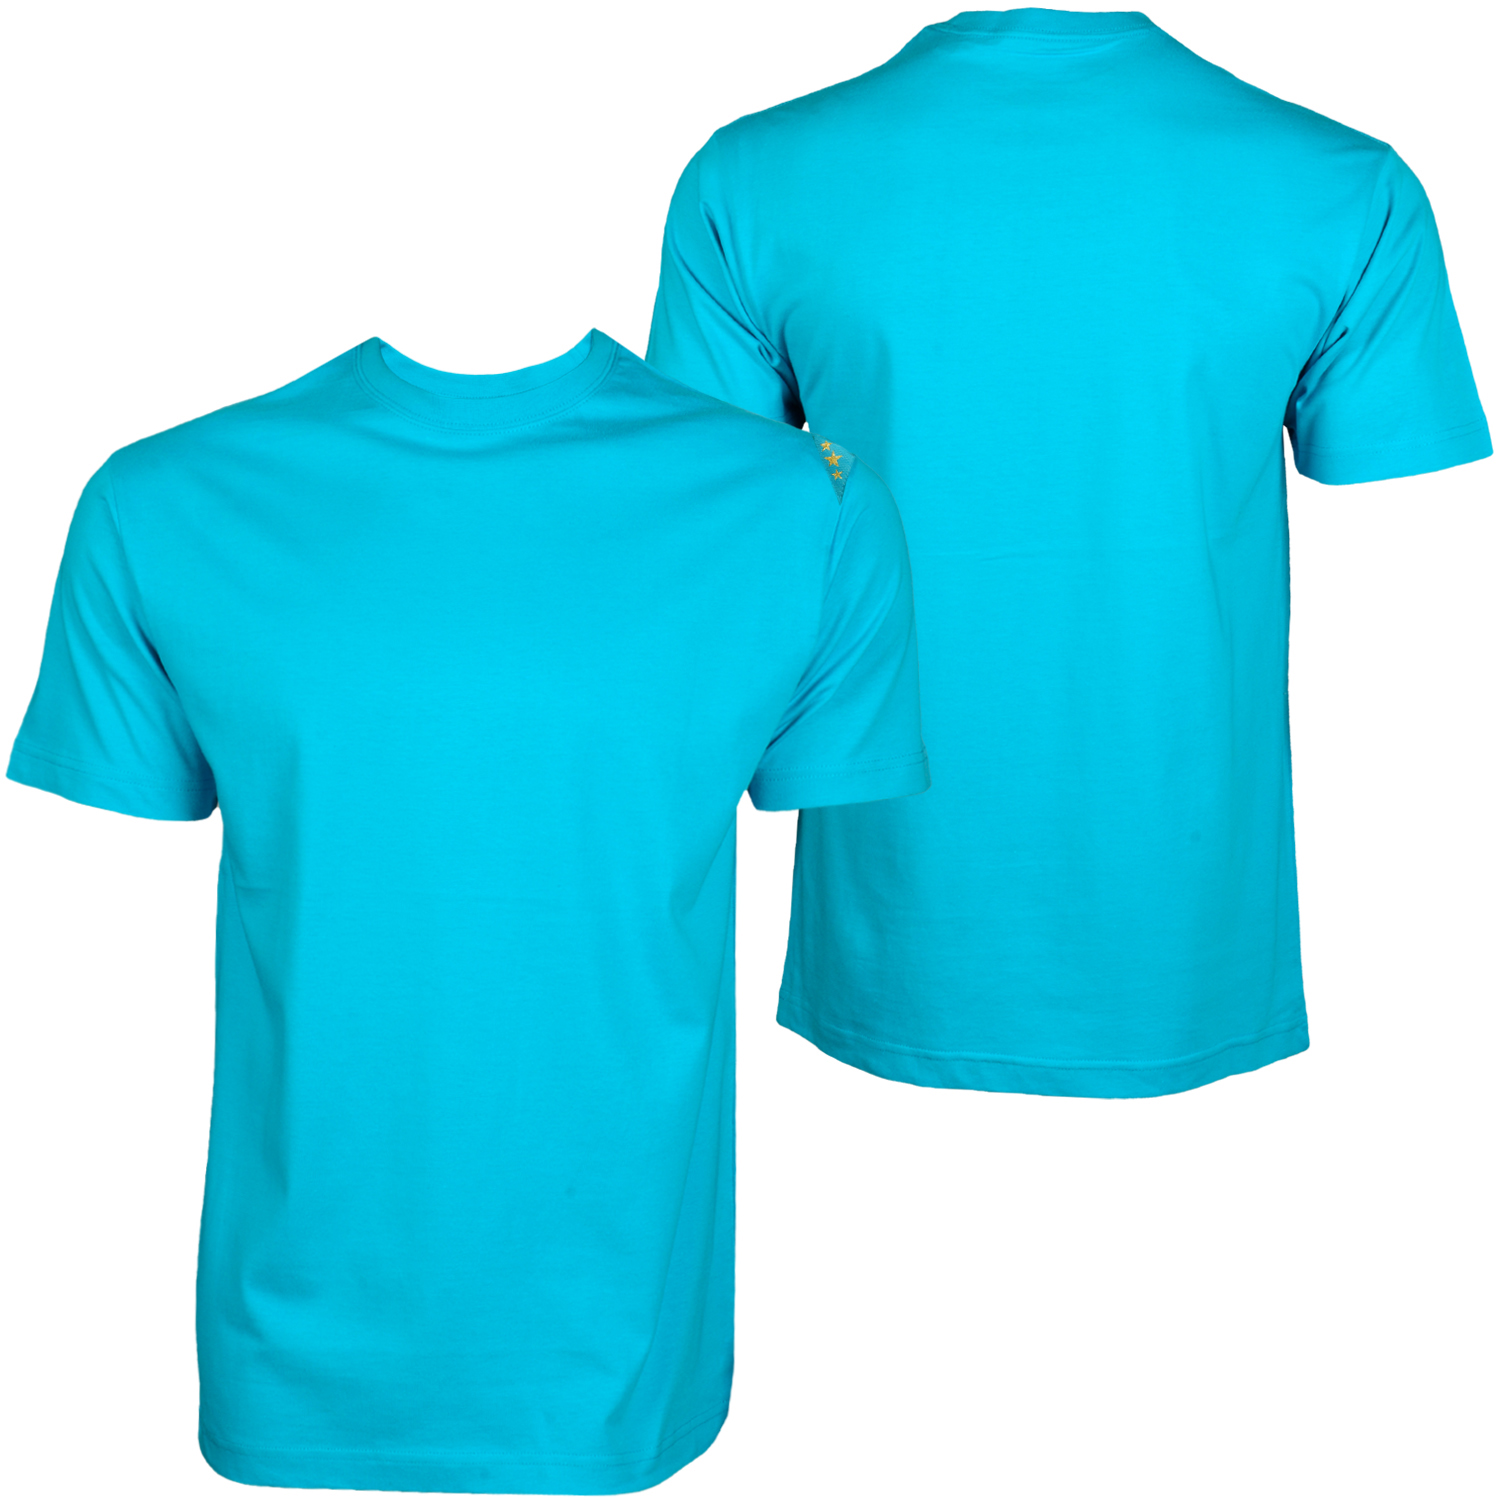 Blank tshirt front and back clipart best for Shirt template front and back